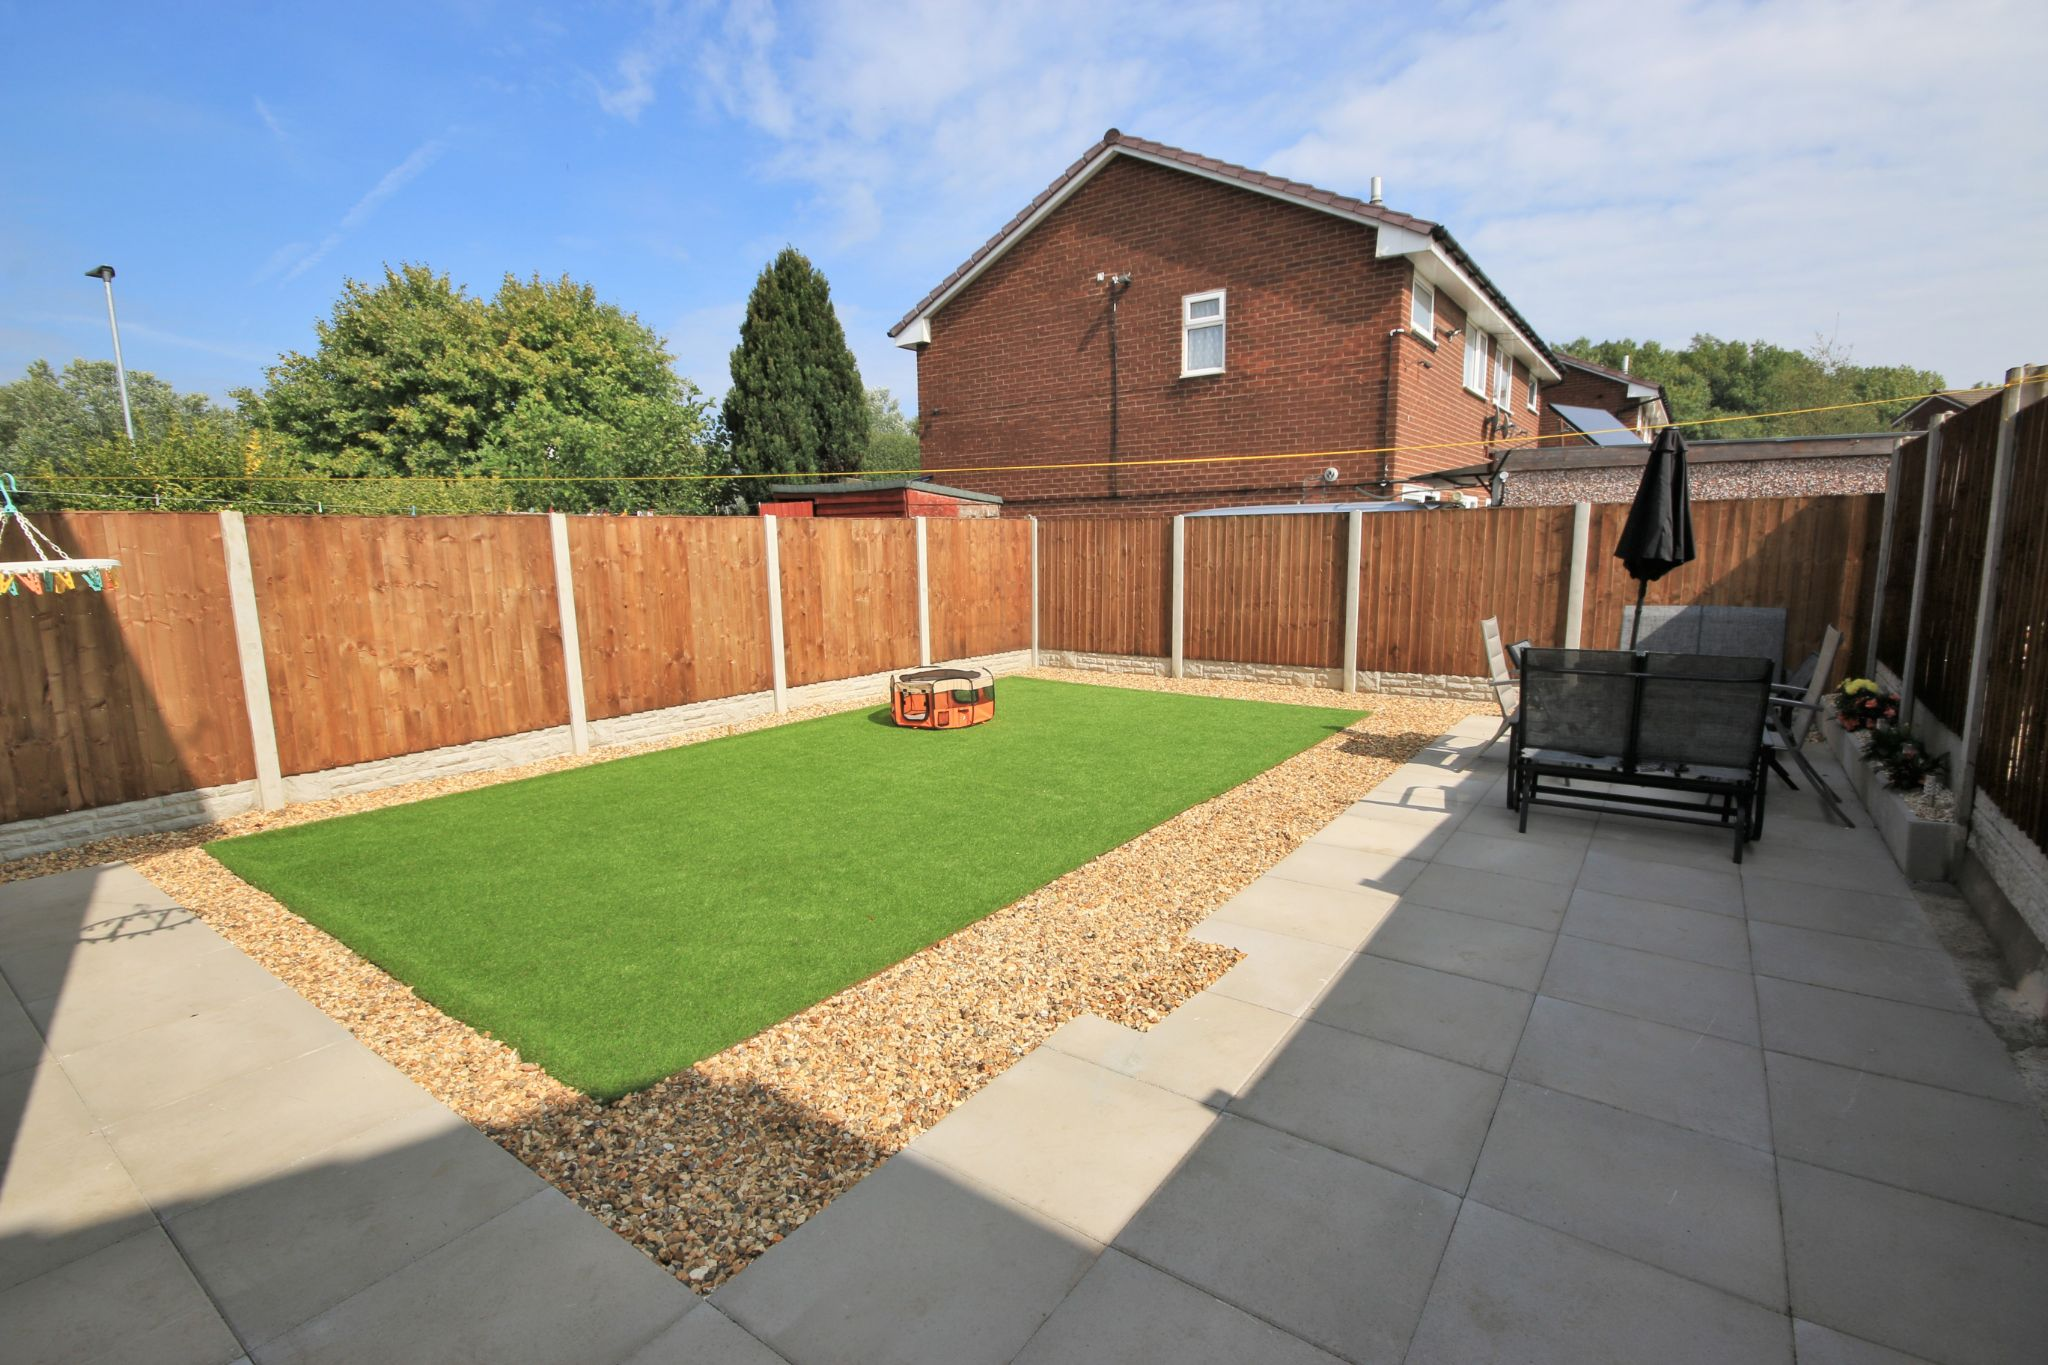 2 Bedroom Semi-detached House For Sale - Photograph 13